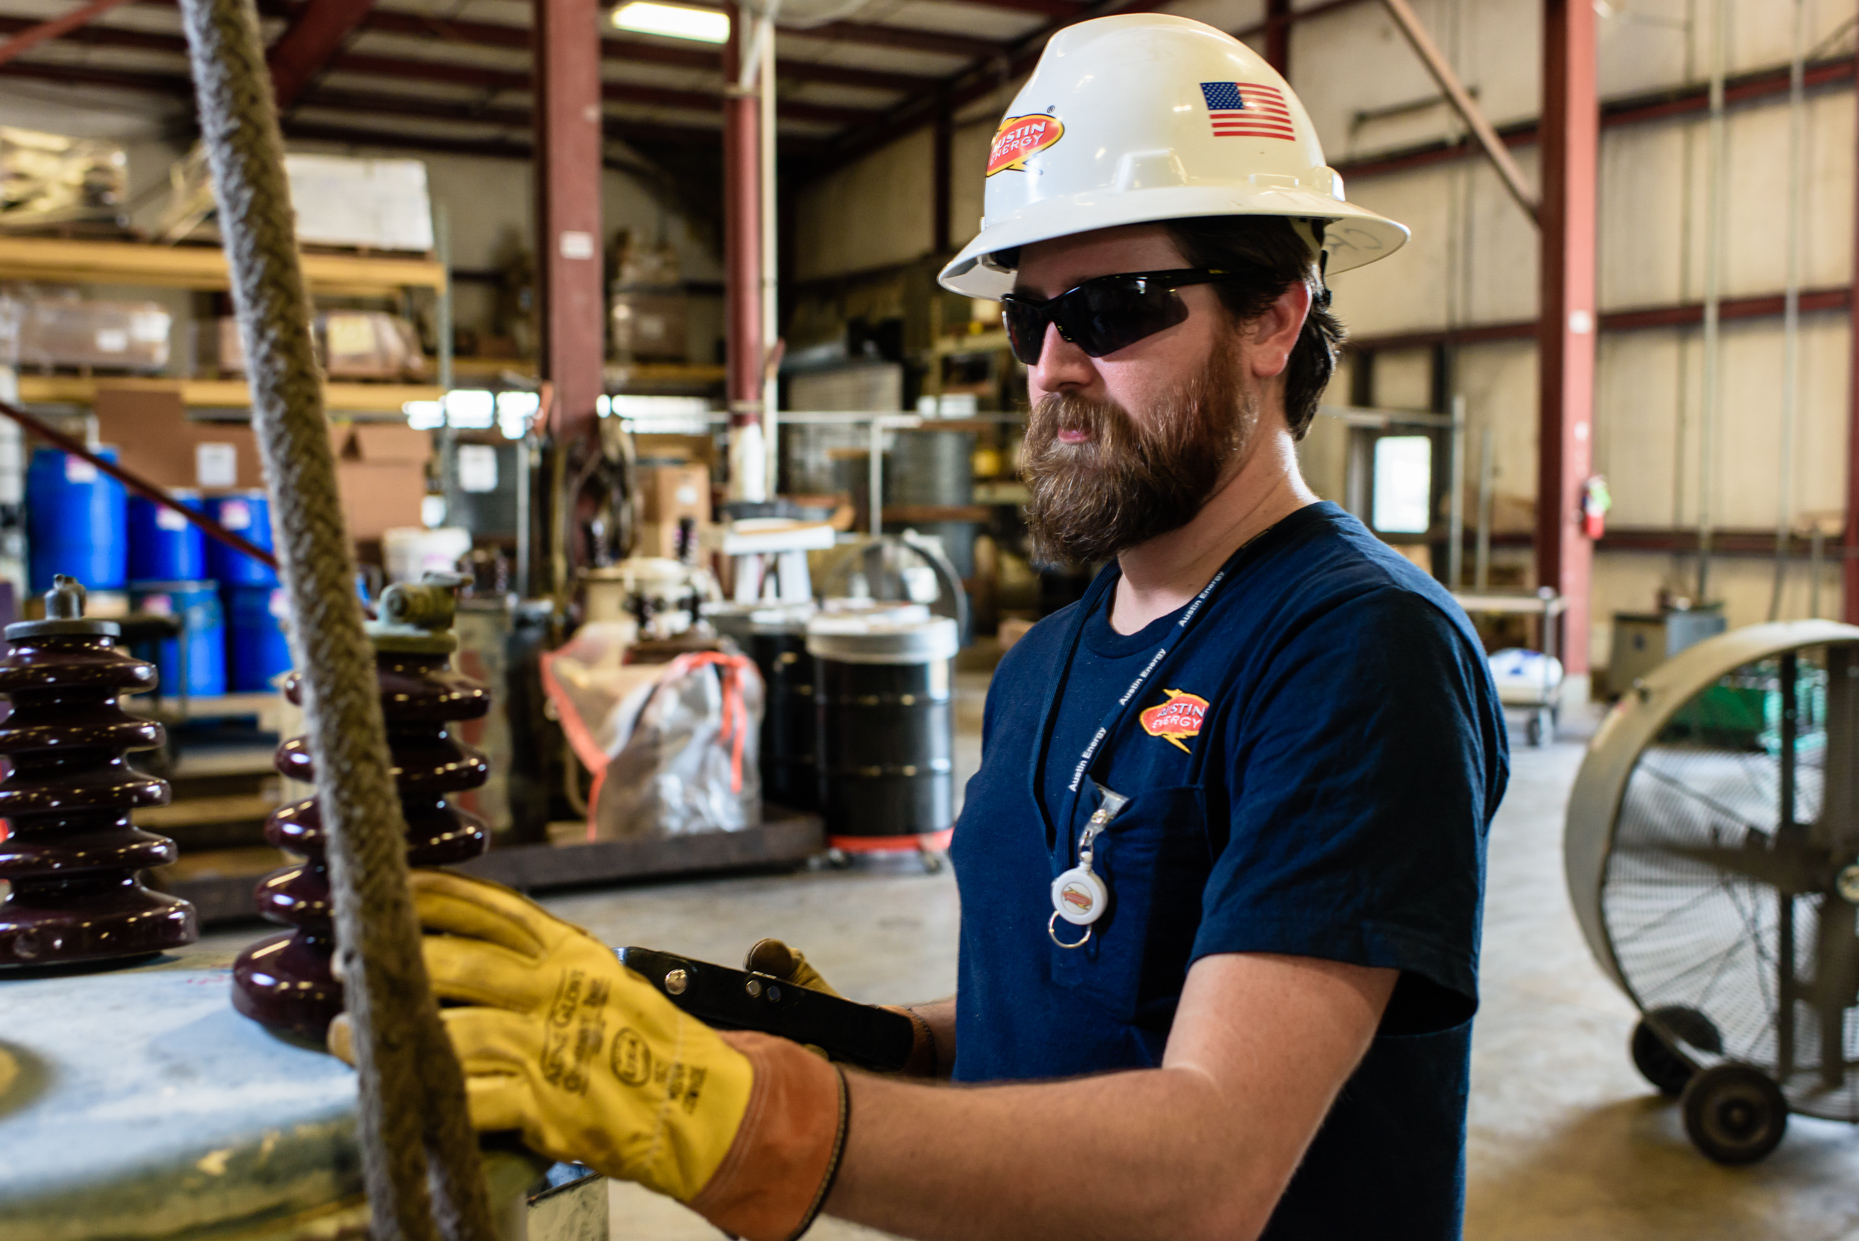 Texas-Commercial-Industrial-photographers-Austin-Energy-employee-worker-power-plant-helmet